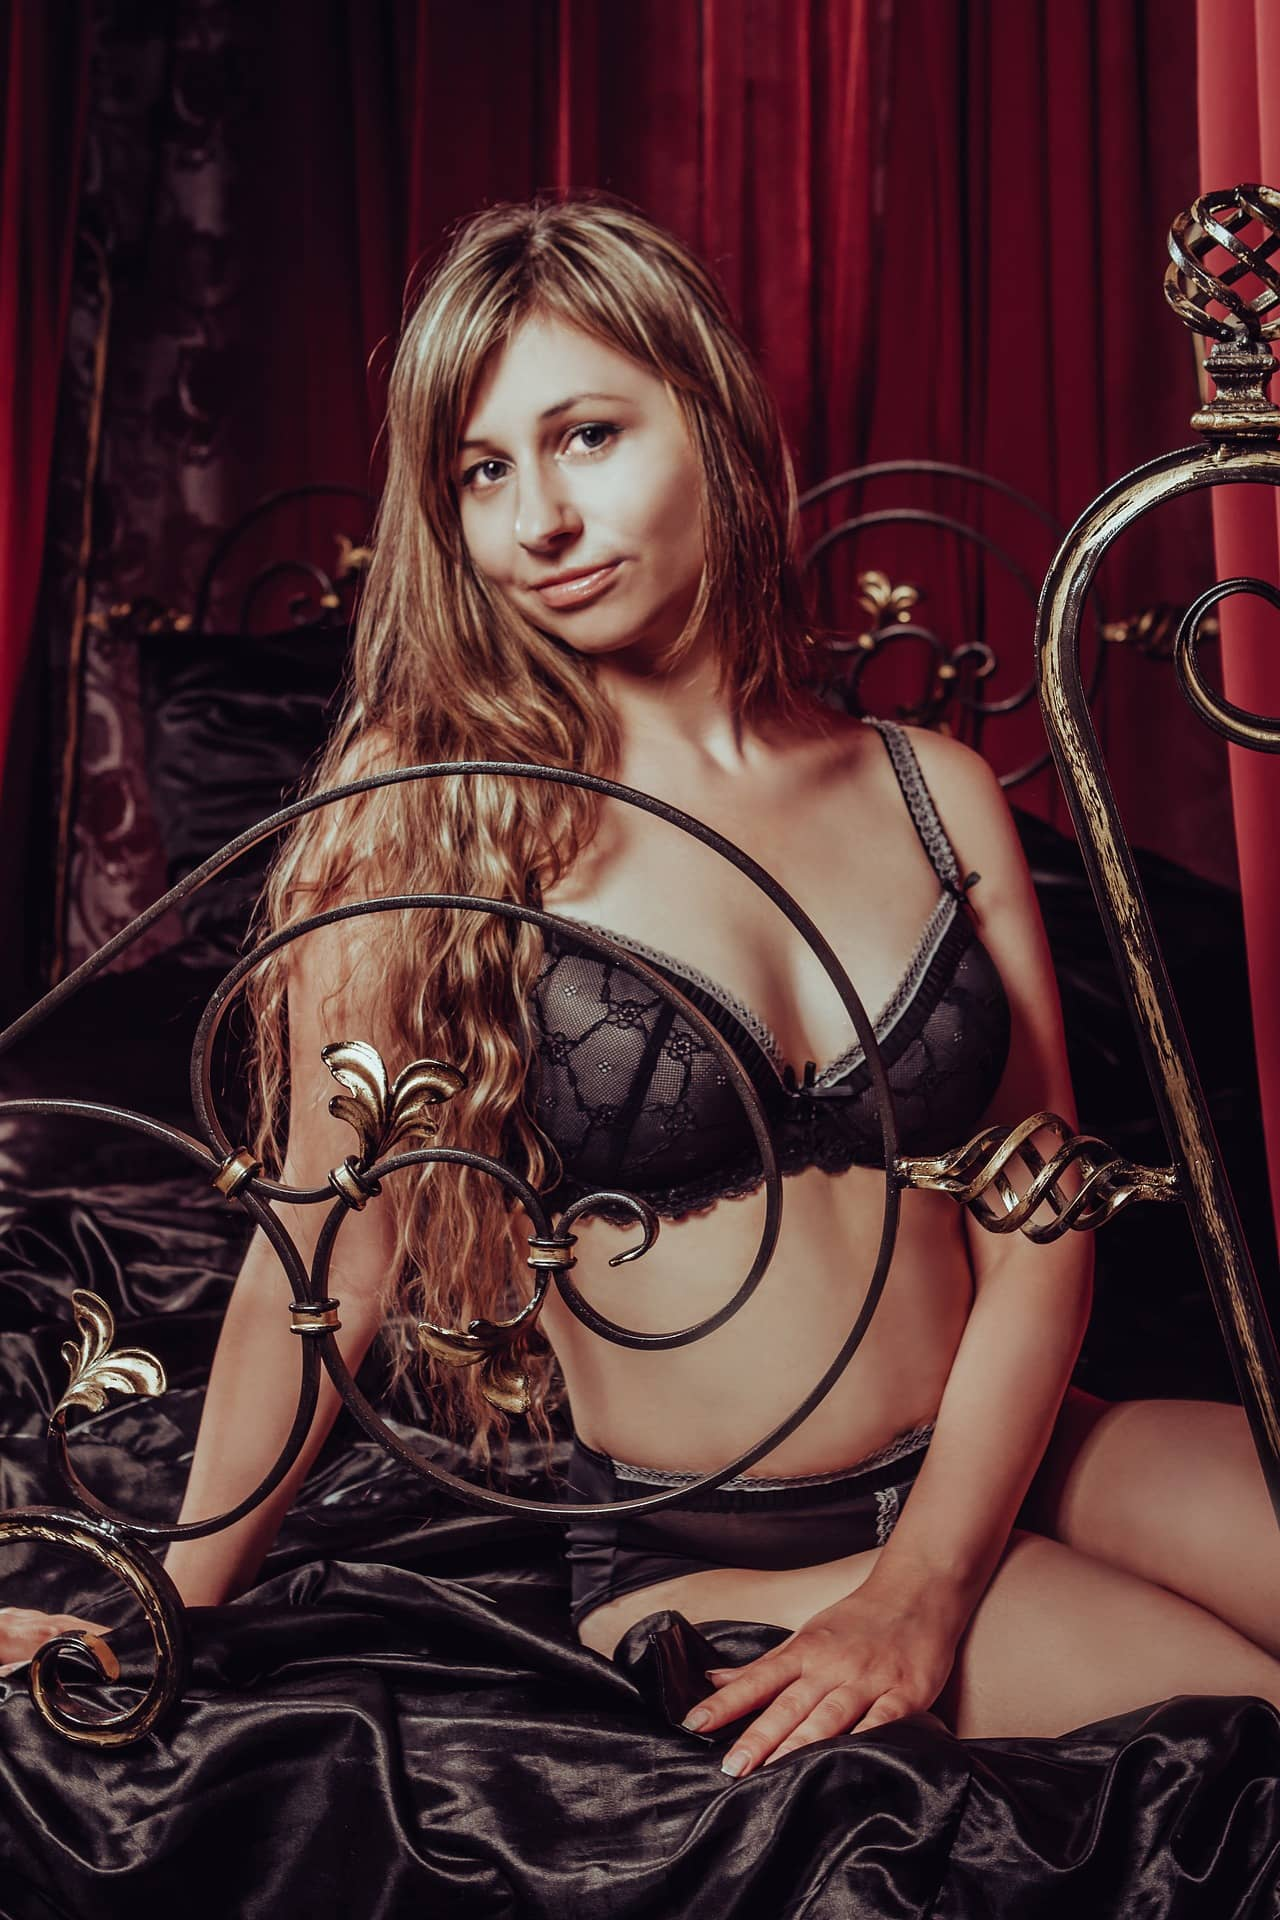 Beautiful russian woman Victoria Borodinova on a satin bed wearing black lace lingerie showing cleavage